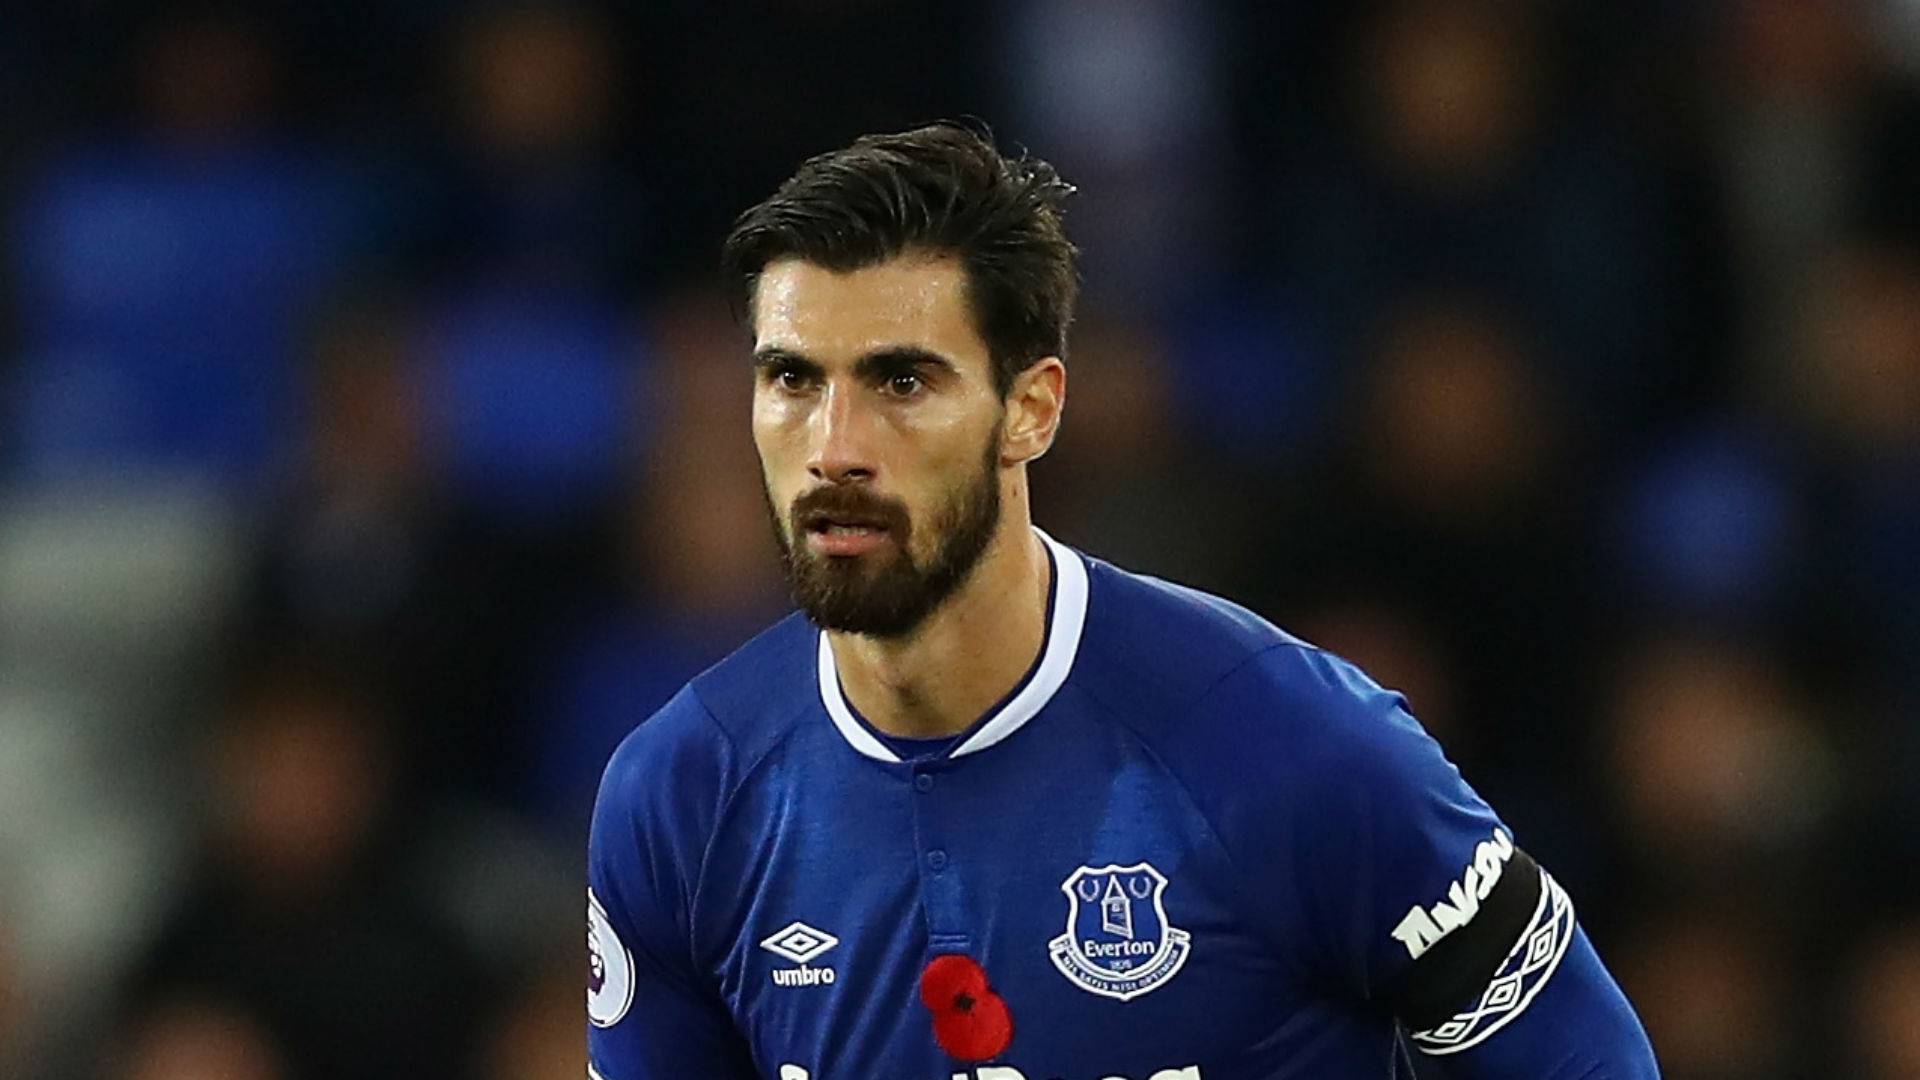 Marco Silva would like to keep Andre Gomes at Everton but concedes sealing a permanent transfer from Barcelona will not be easy.